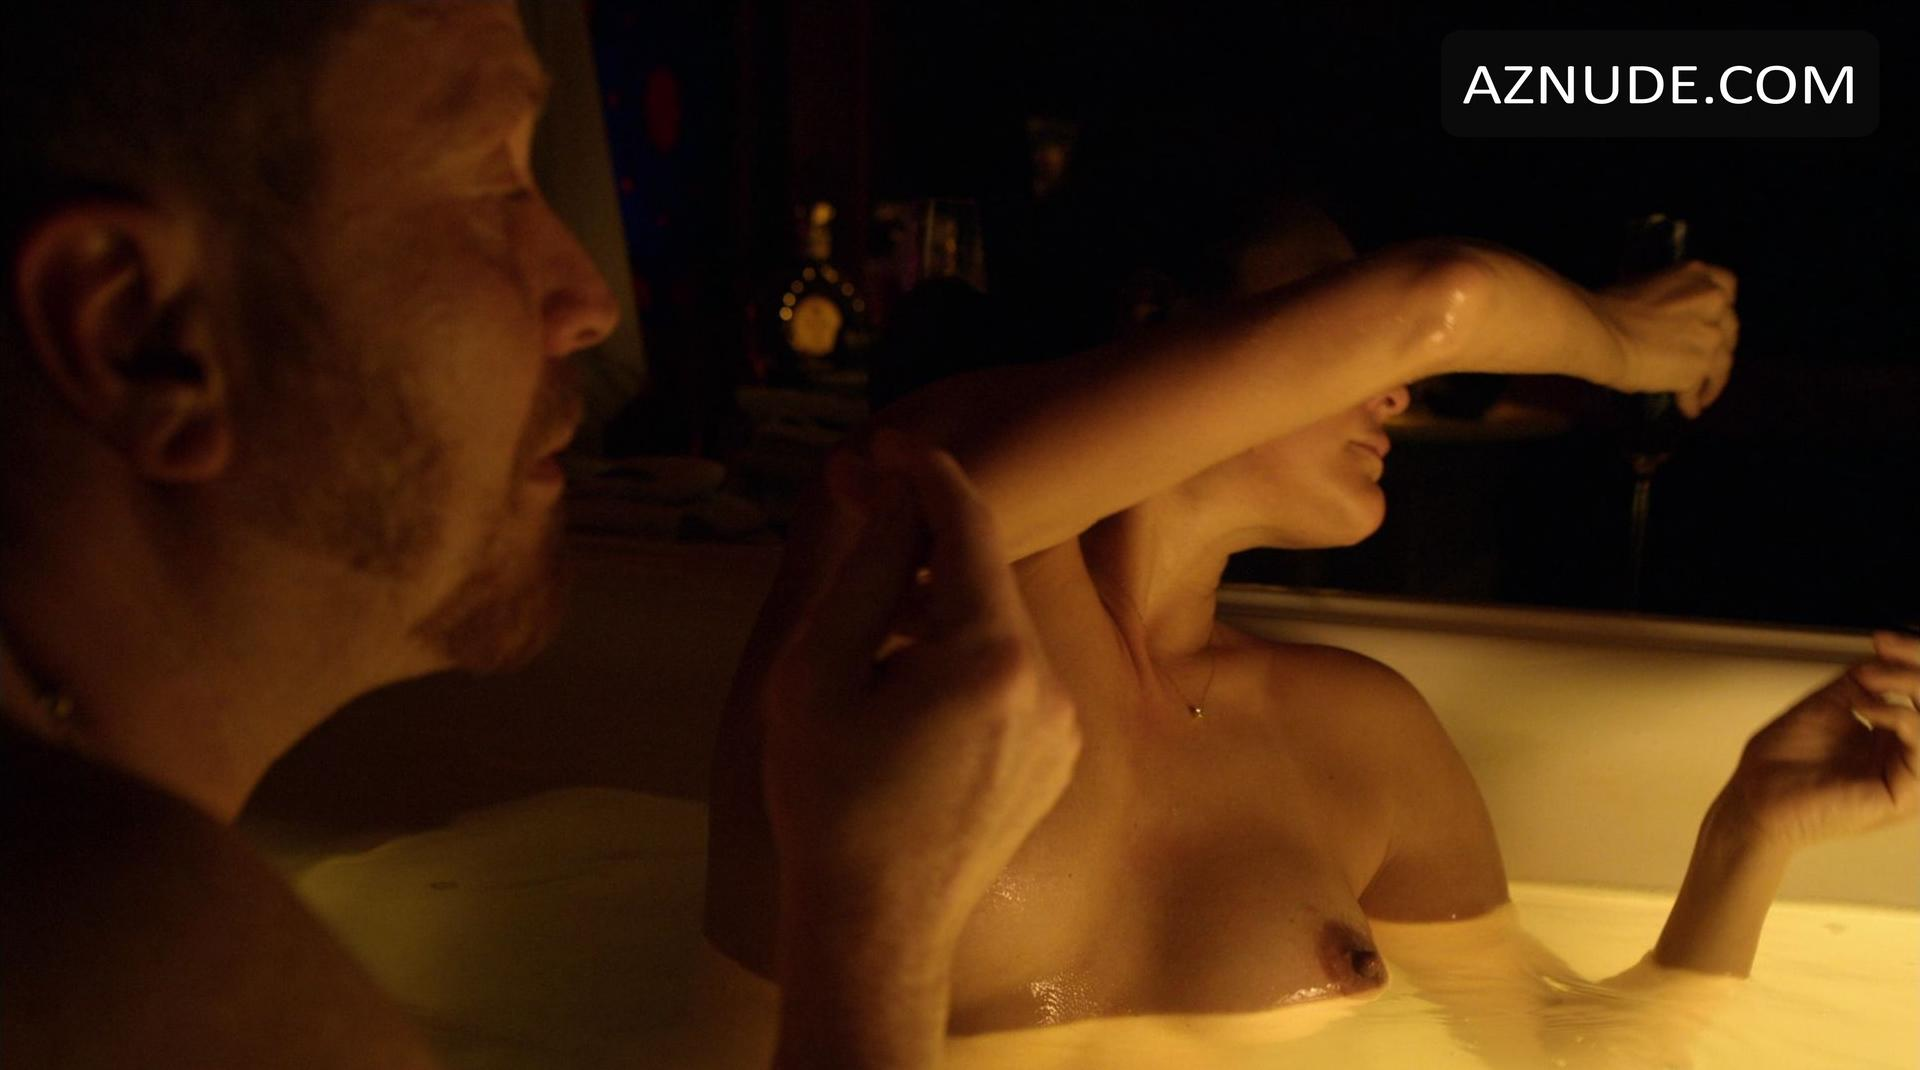 Adria arjona sex from behind in narcos scandalplanetcom - 1 part 1